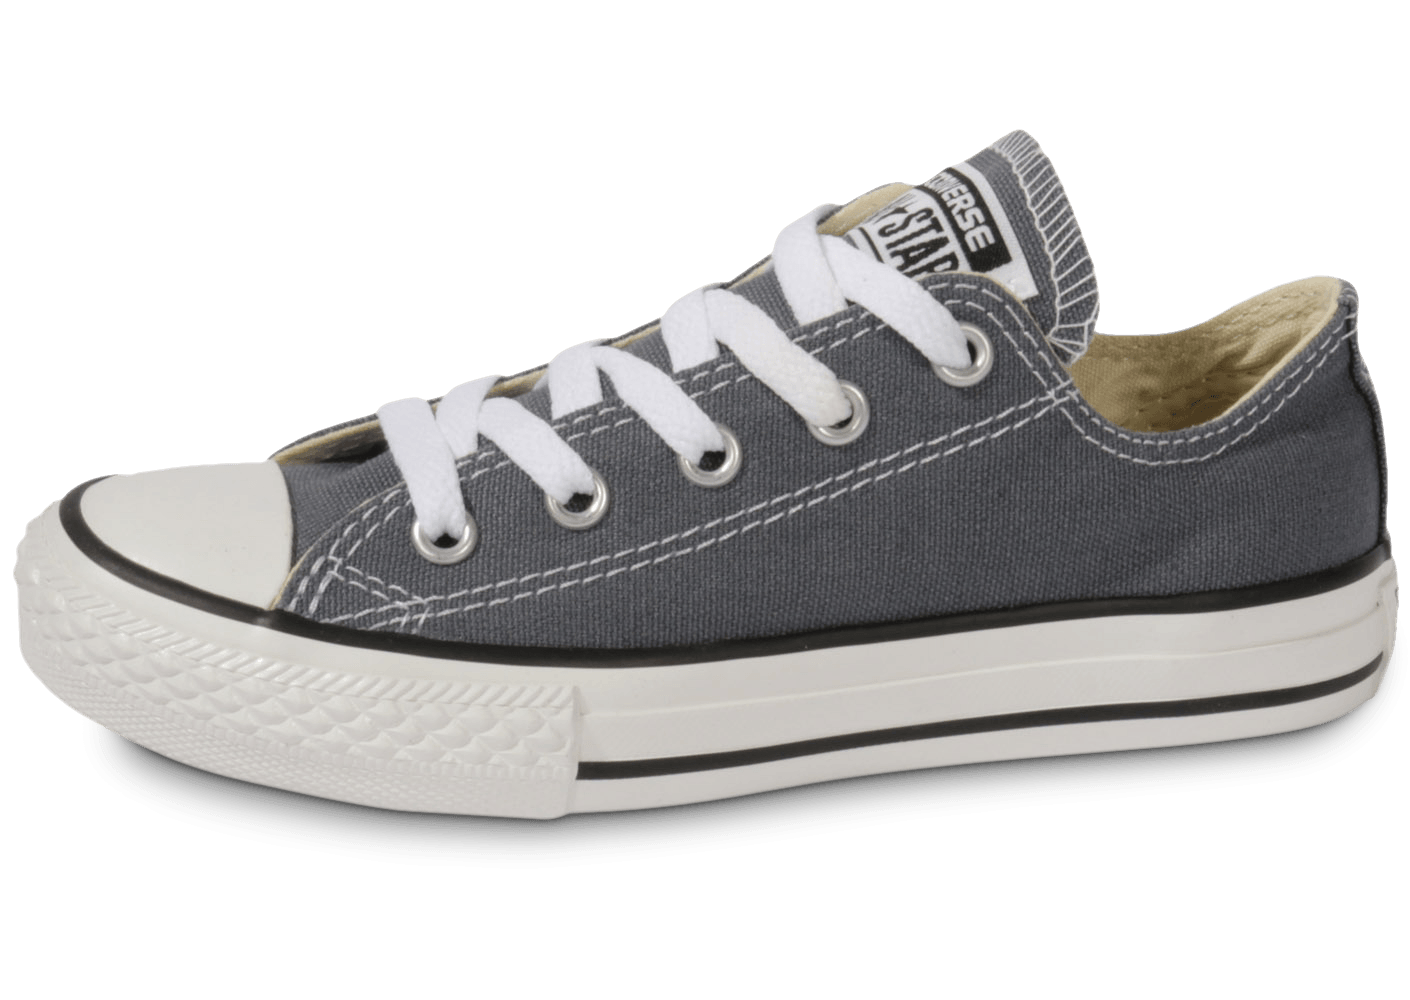 9ccdaad332c79 Converse Chuck Taylor All Star low enfant admiral - Chaussures Chaussures -  Chausport